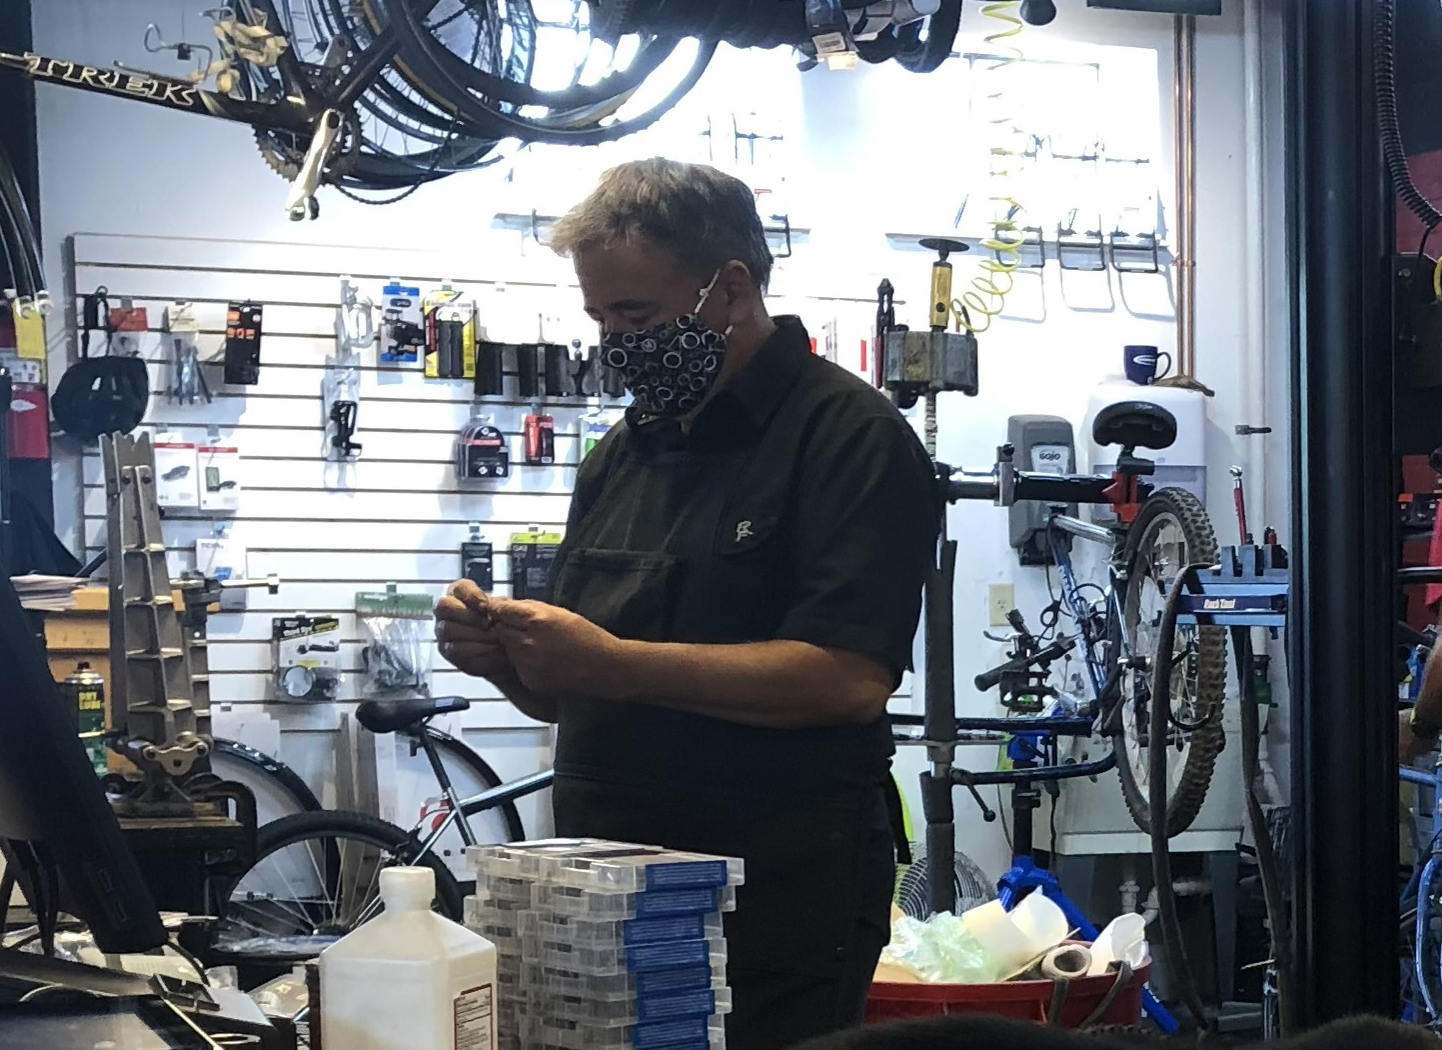 Doug Hamilton returned to Oxford and took over the bike shop 18 years ago